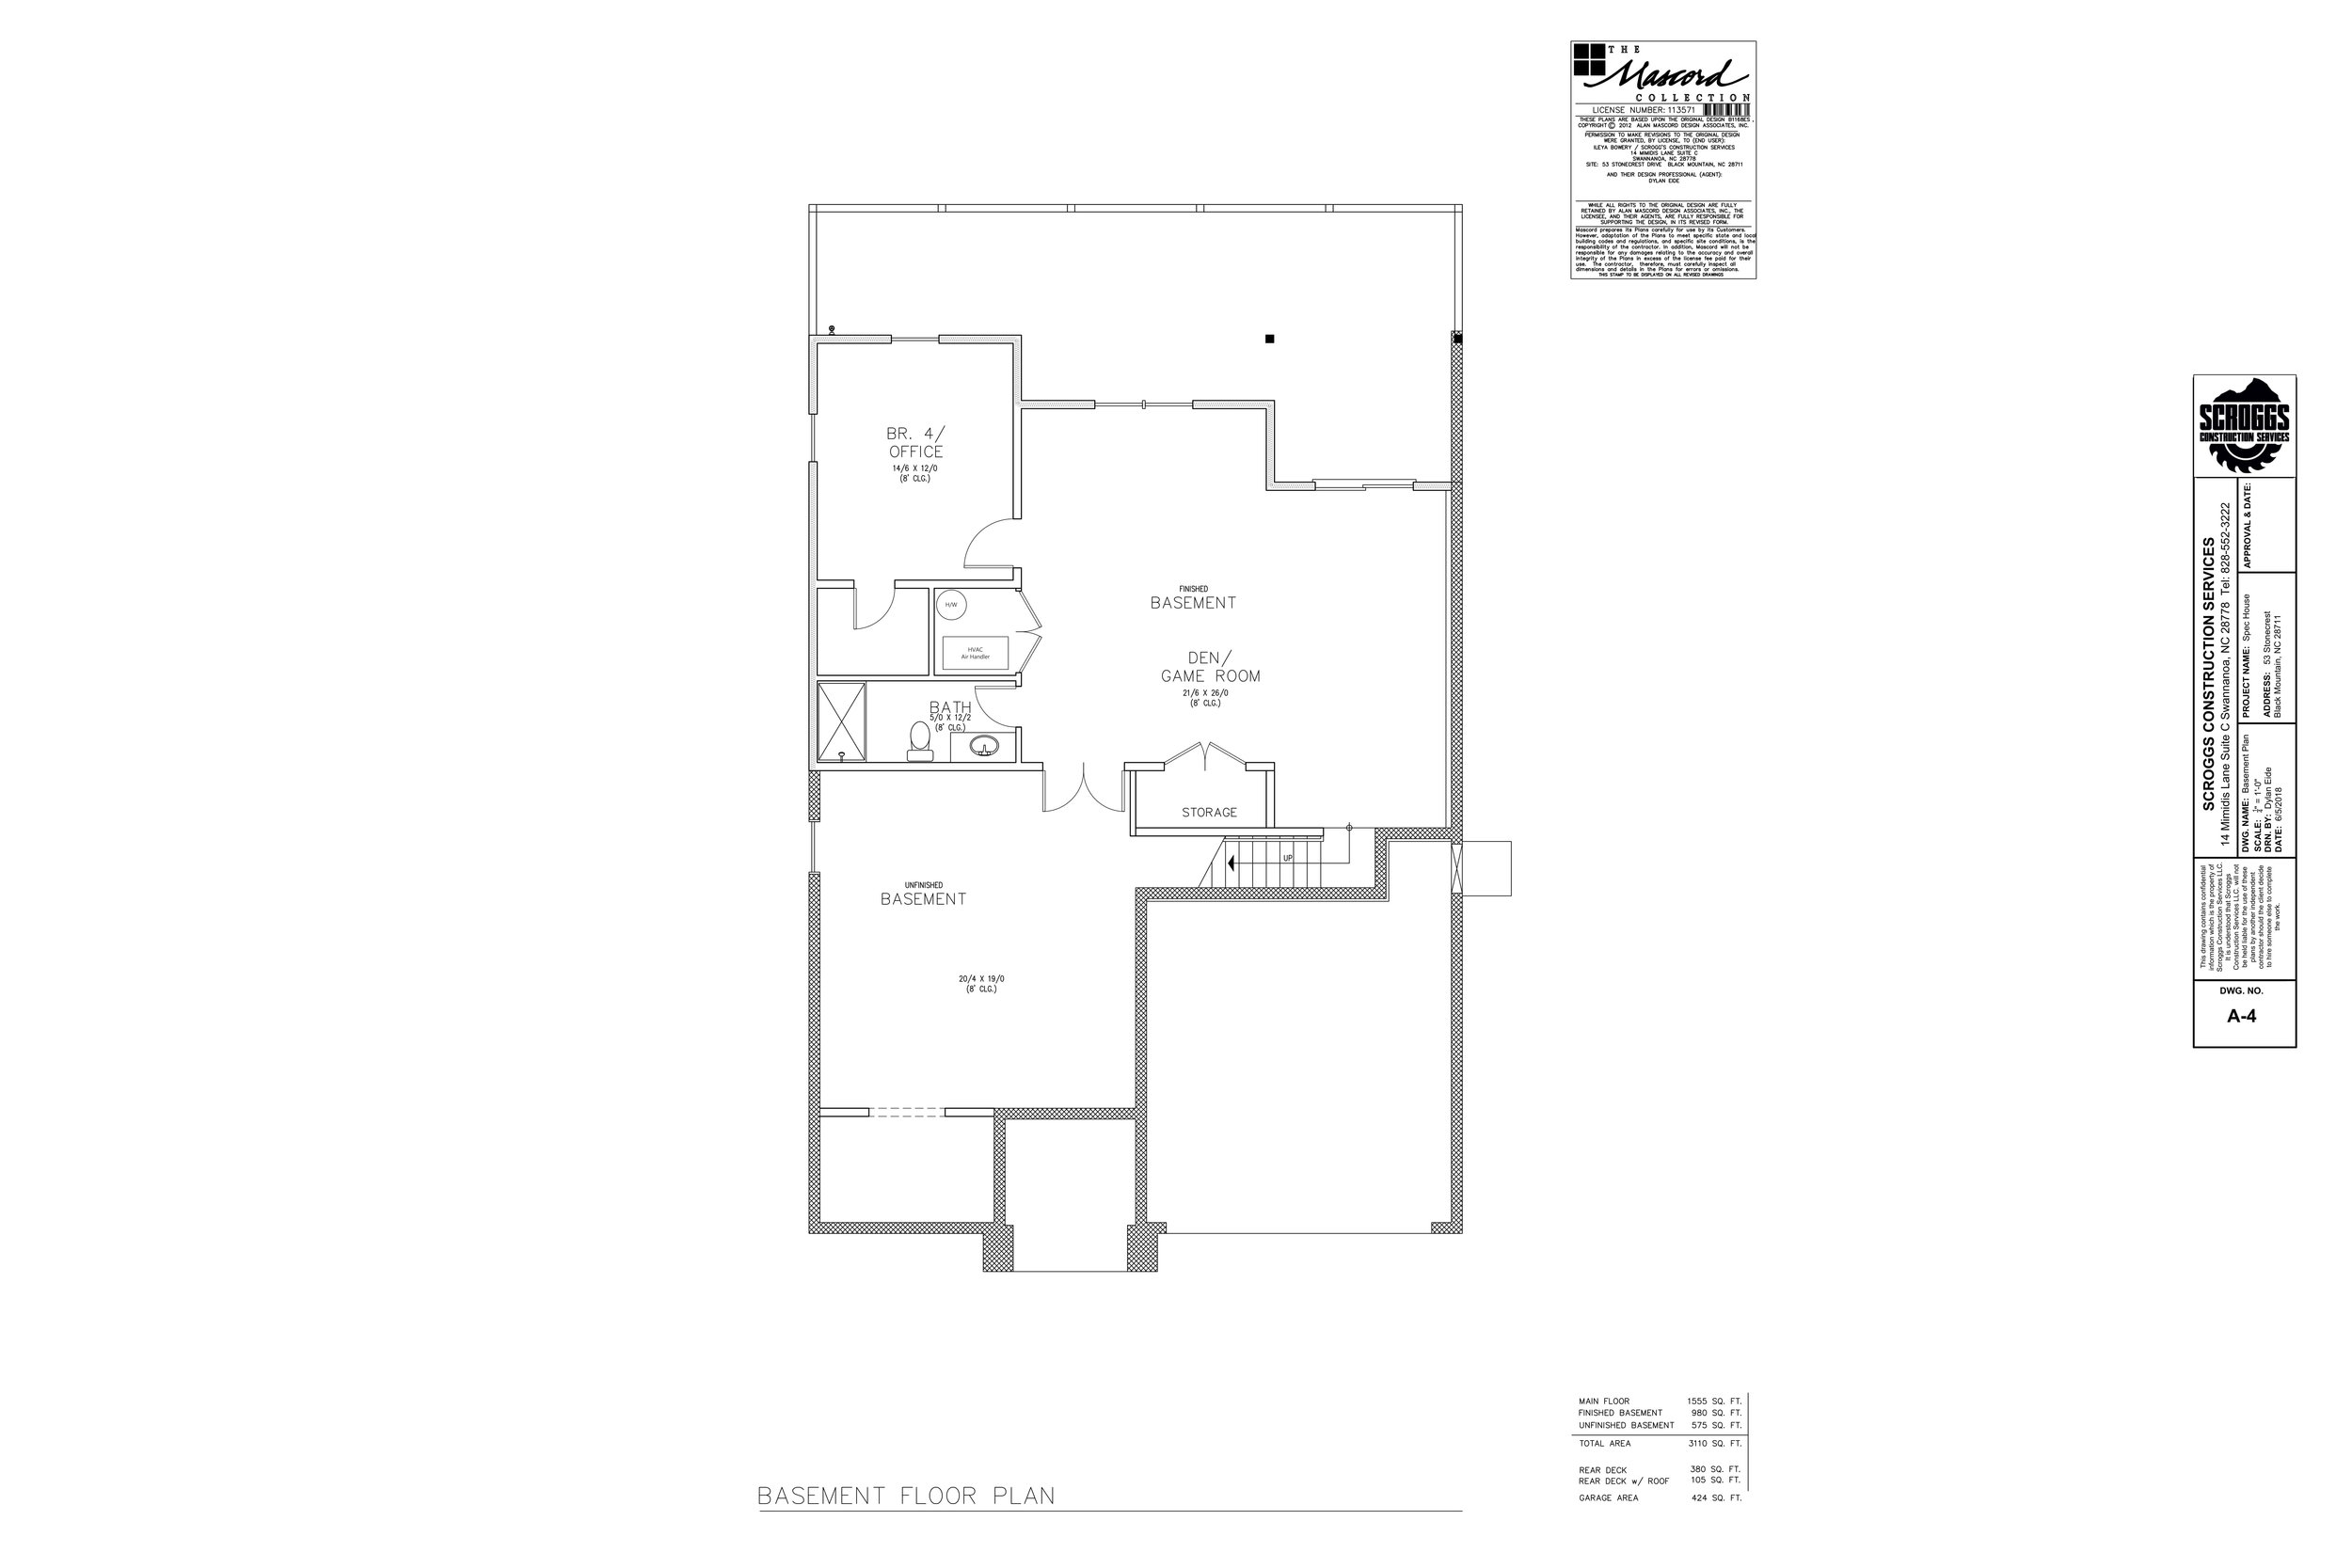 Spec House Sales File-2.jpg